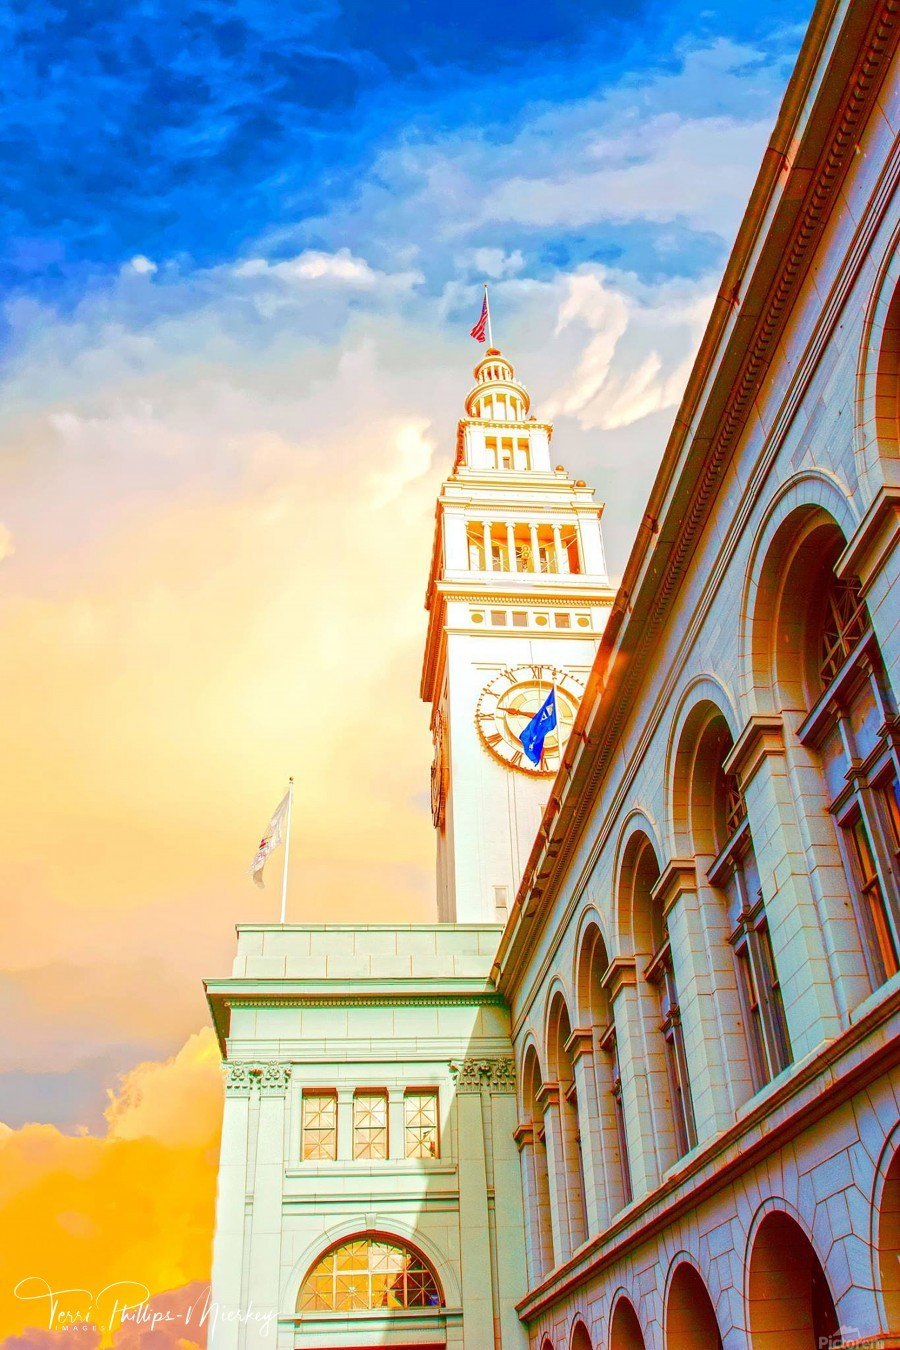 San Francisco Ferry Building Clock Tower By Terri Phillips Mierkey  Print